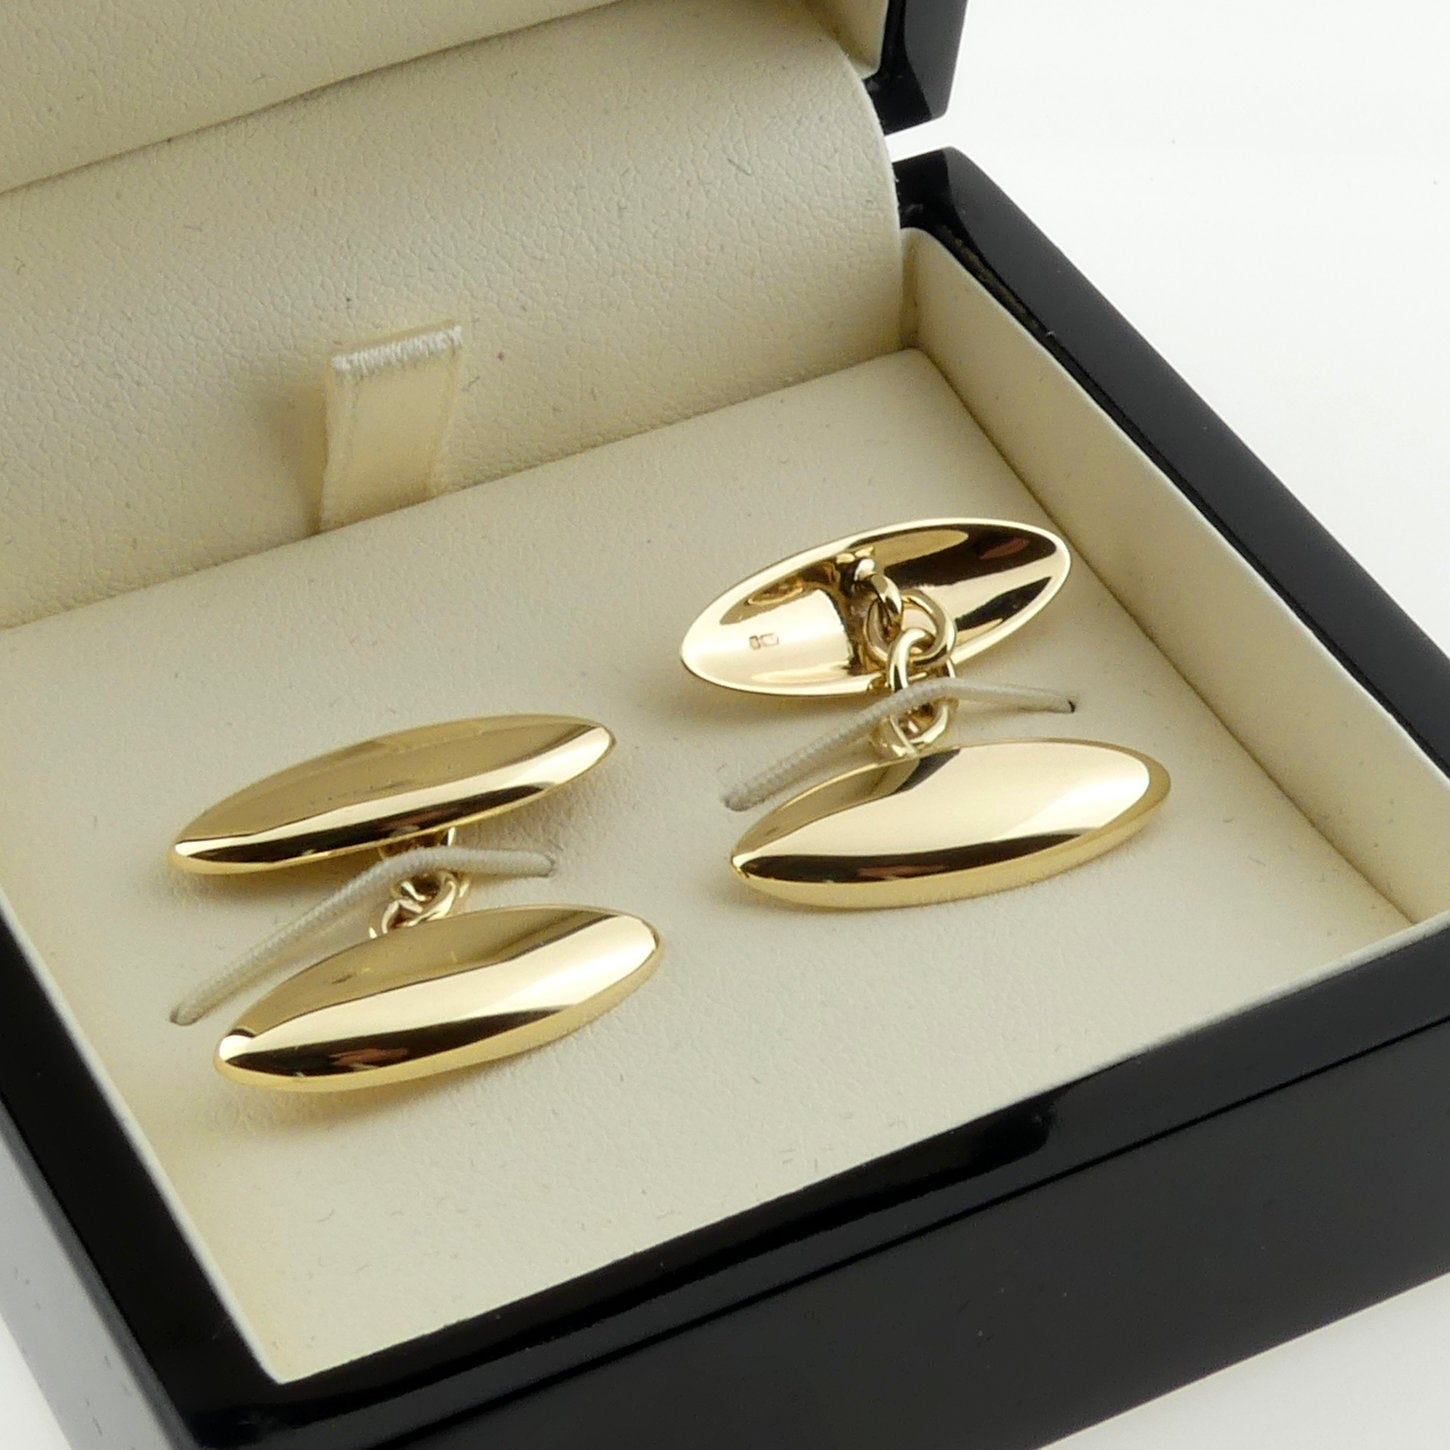 long domed oval gold cufflinks showing the back